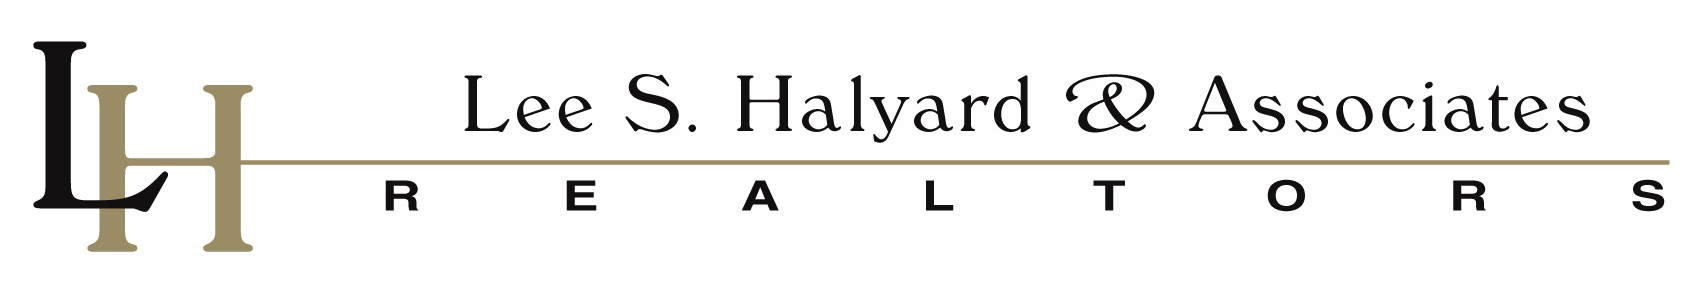 LEE S. HALYARD & ASSOCIATES, REALTORS